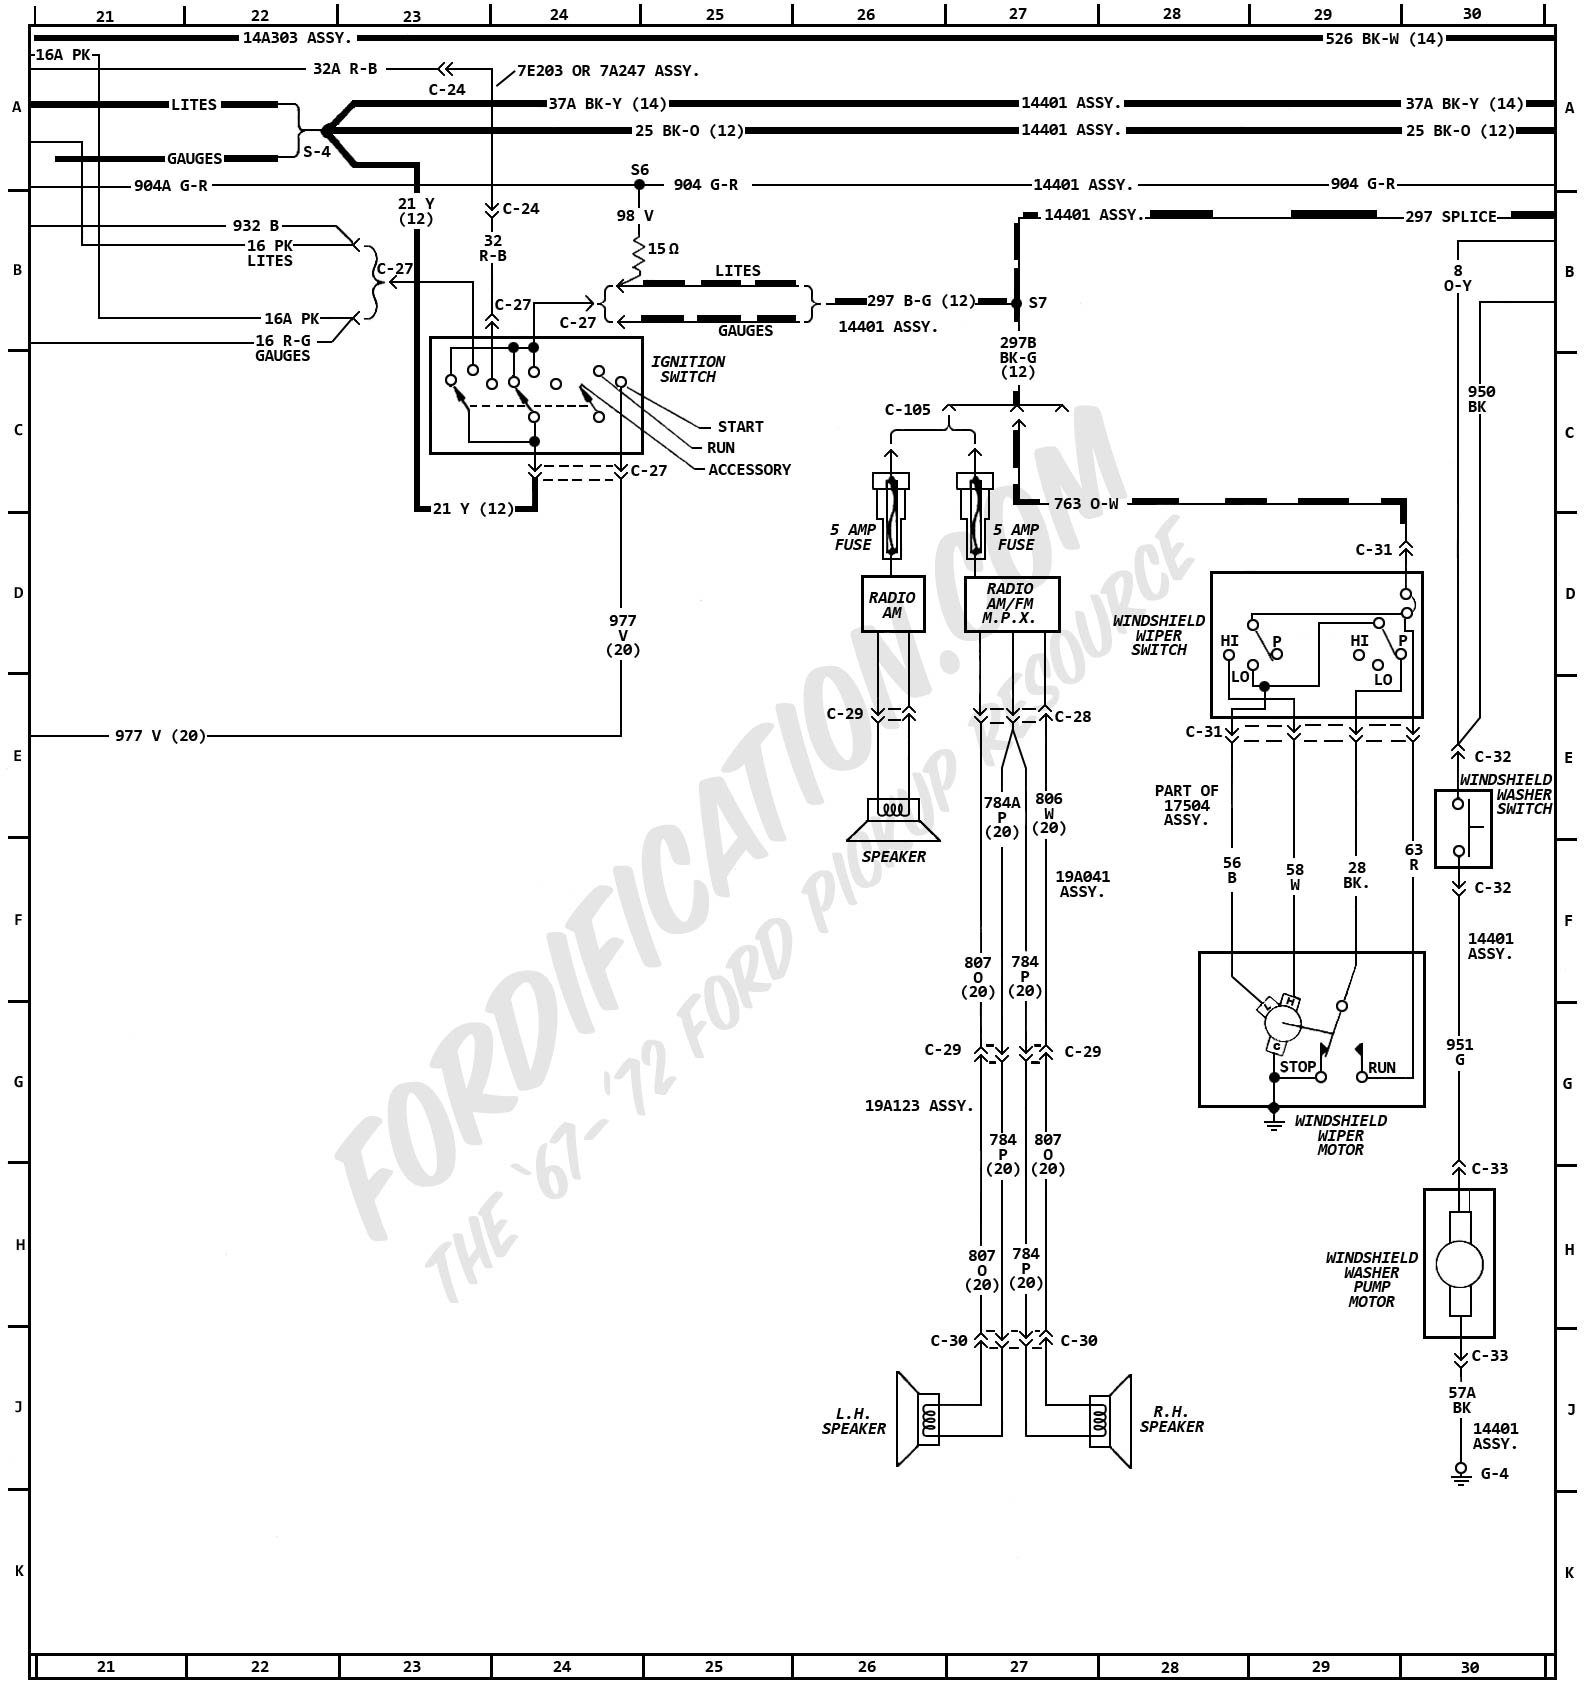 72 Ford F250 Light Wiring Diagram bull Wiring Diagram For Free